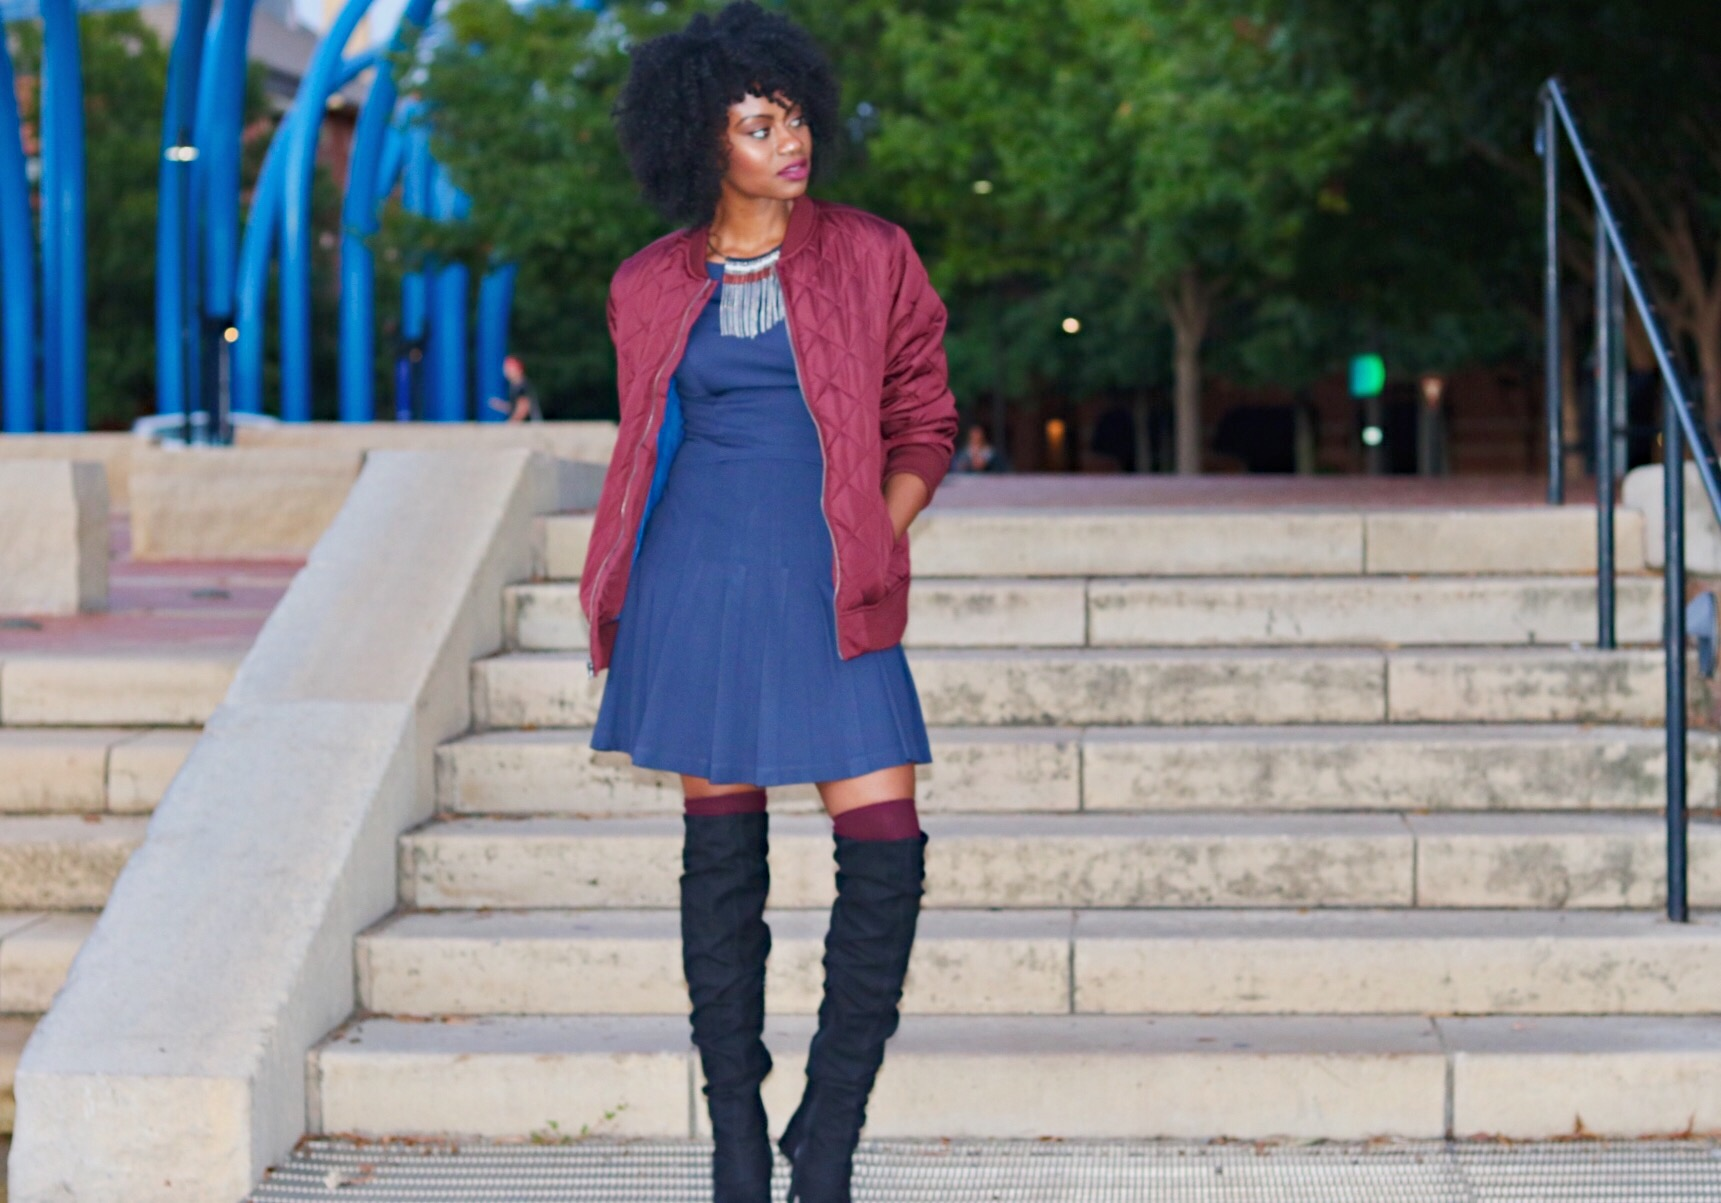 ox blood maroon bomber navy pleated dress maroon over the knee socks black over the knee boots